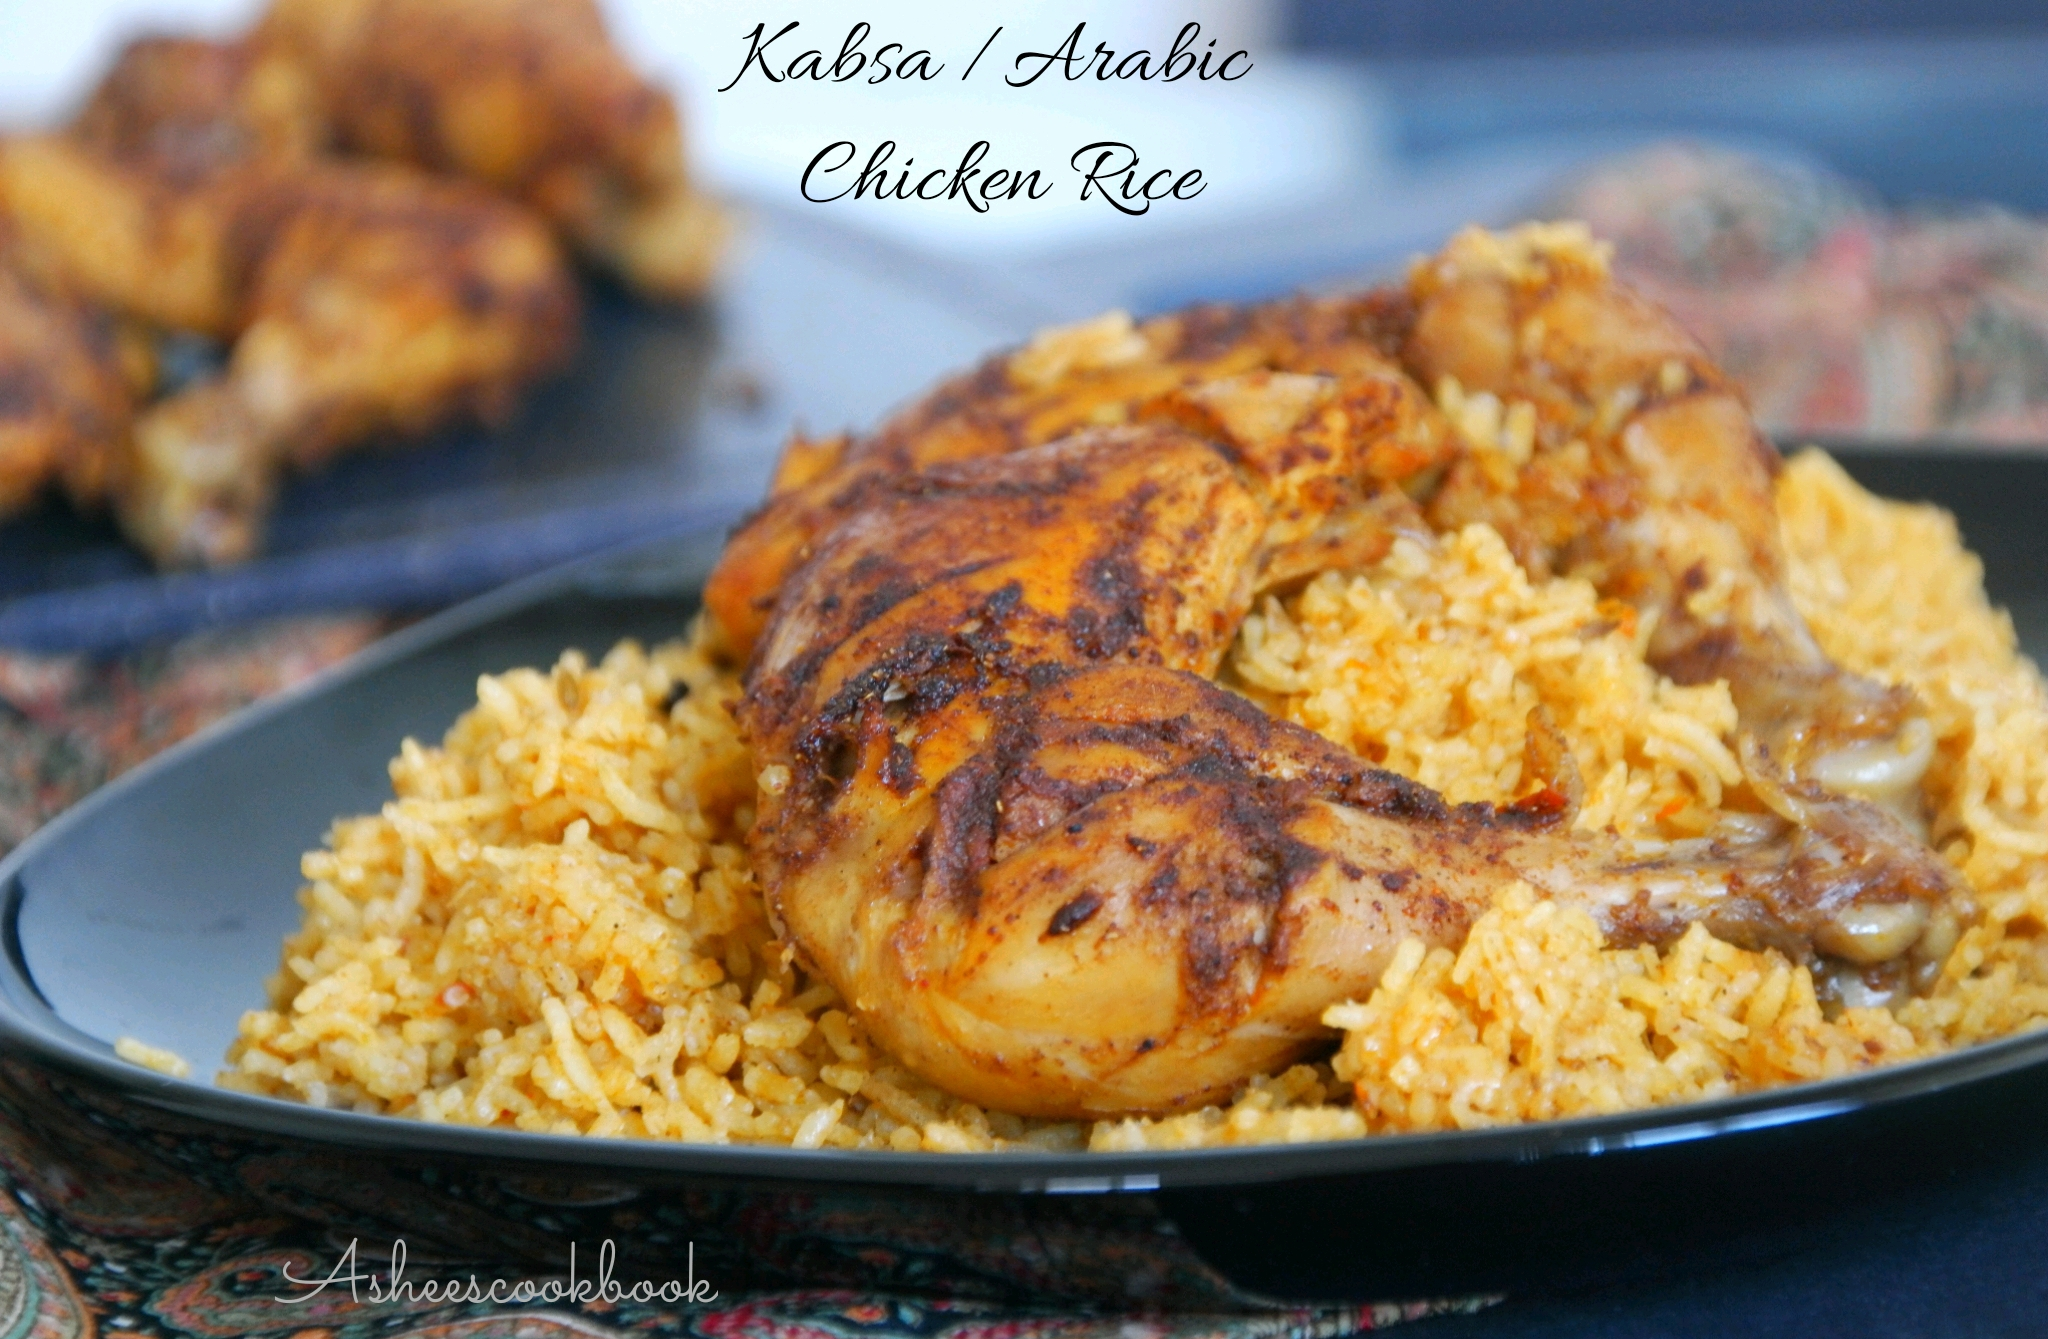 Kabsa Arabic Chicken Rice Ashees Cookbook Cooking Is Magic